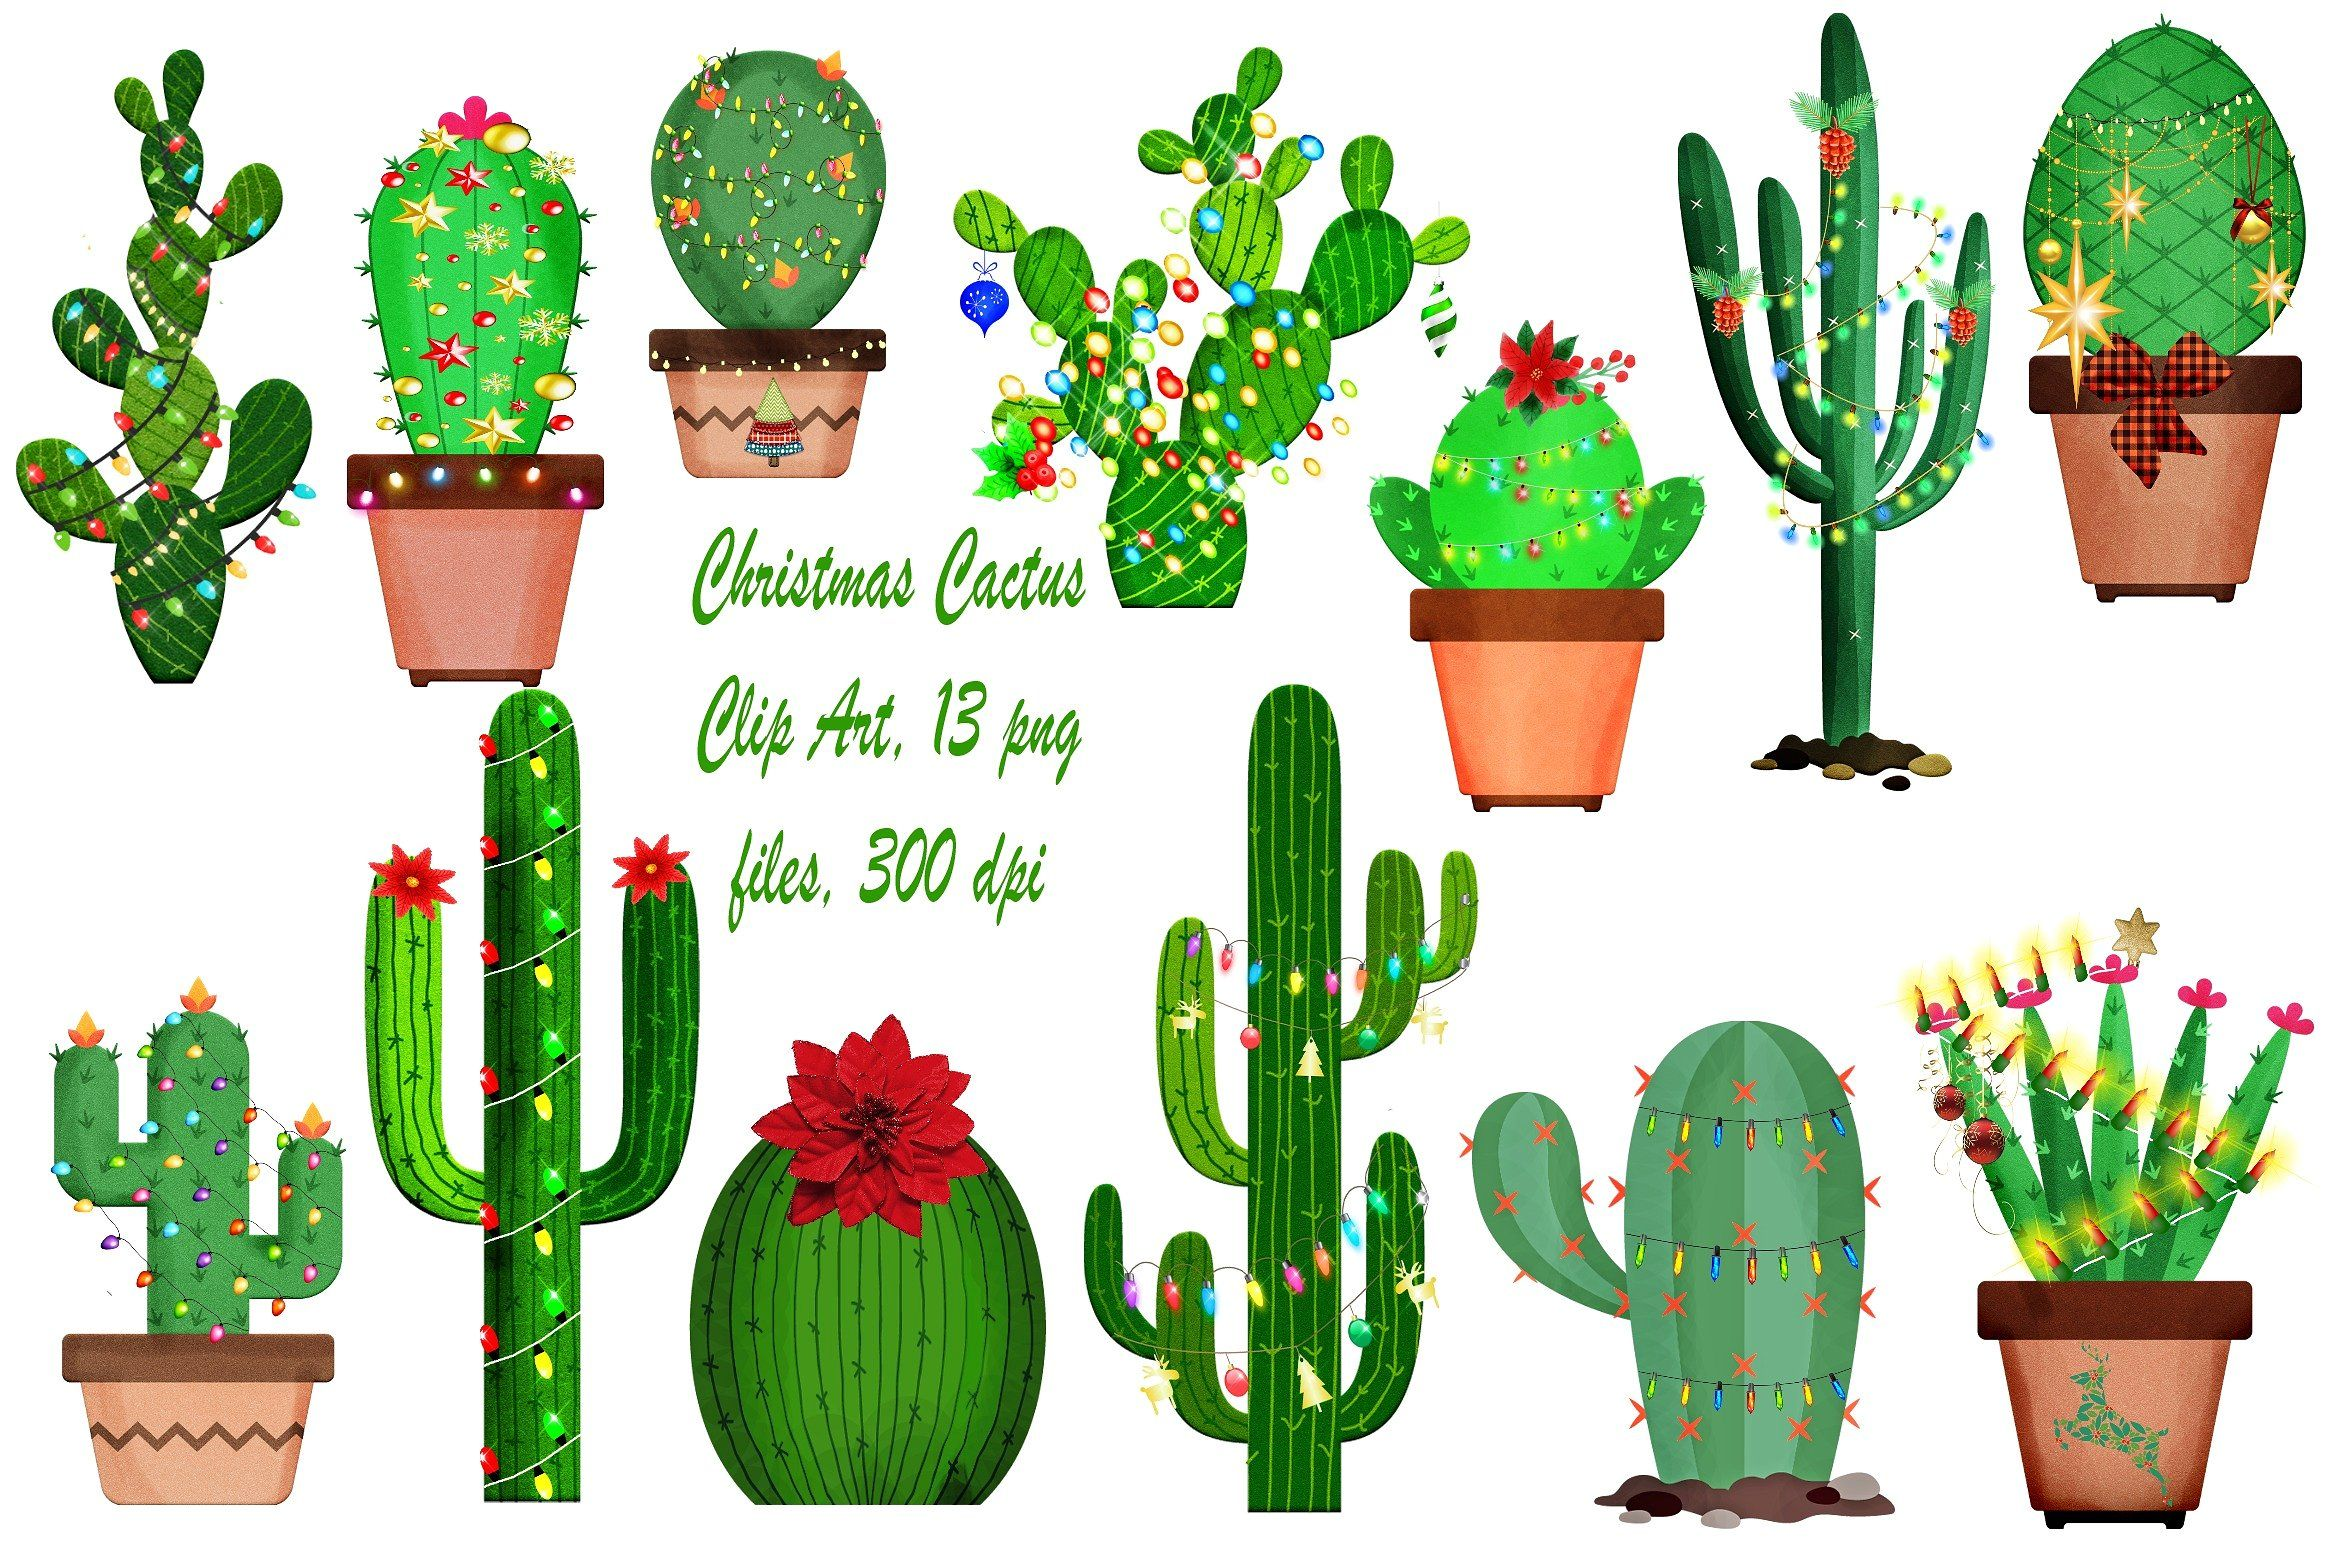 Christmas Cute Cactus Clip Art 13 Png Files With Transparent